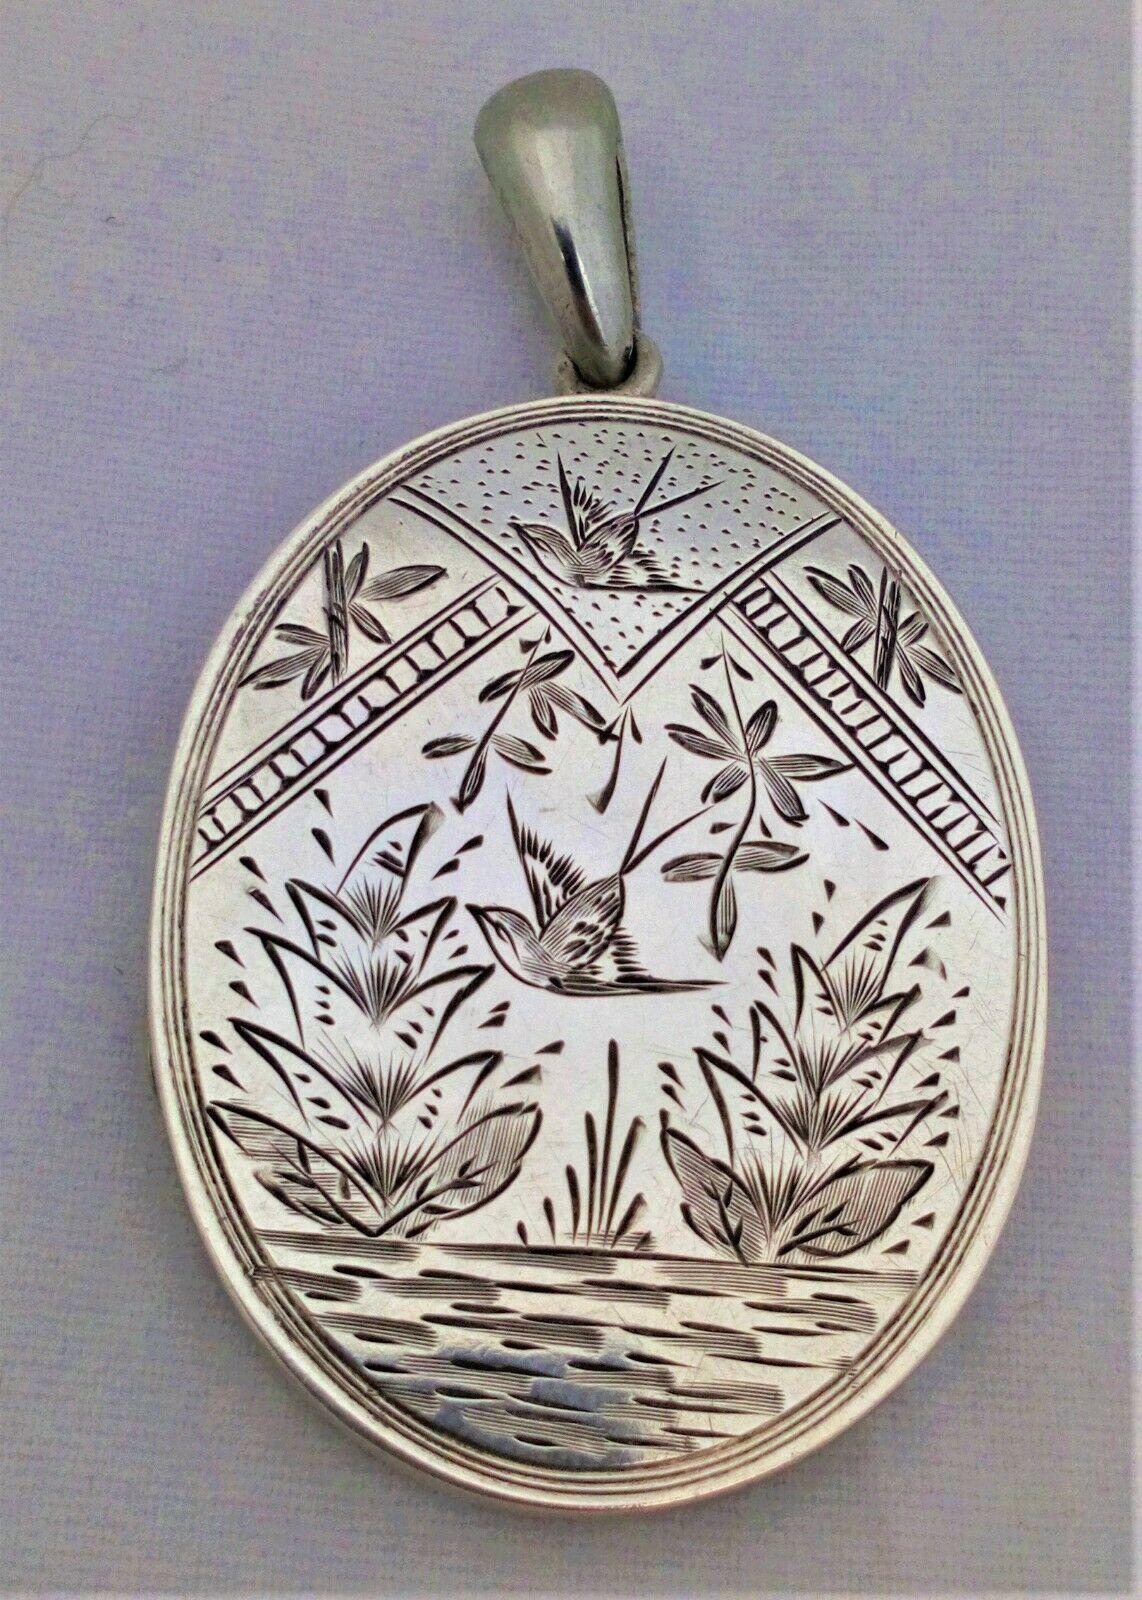 Antique Aesthetic Movement Large Silver Locket Engraved Japonesque Pattern circa 1870